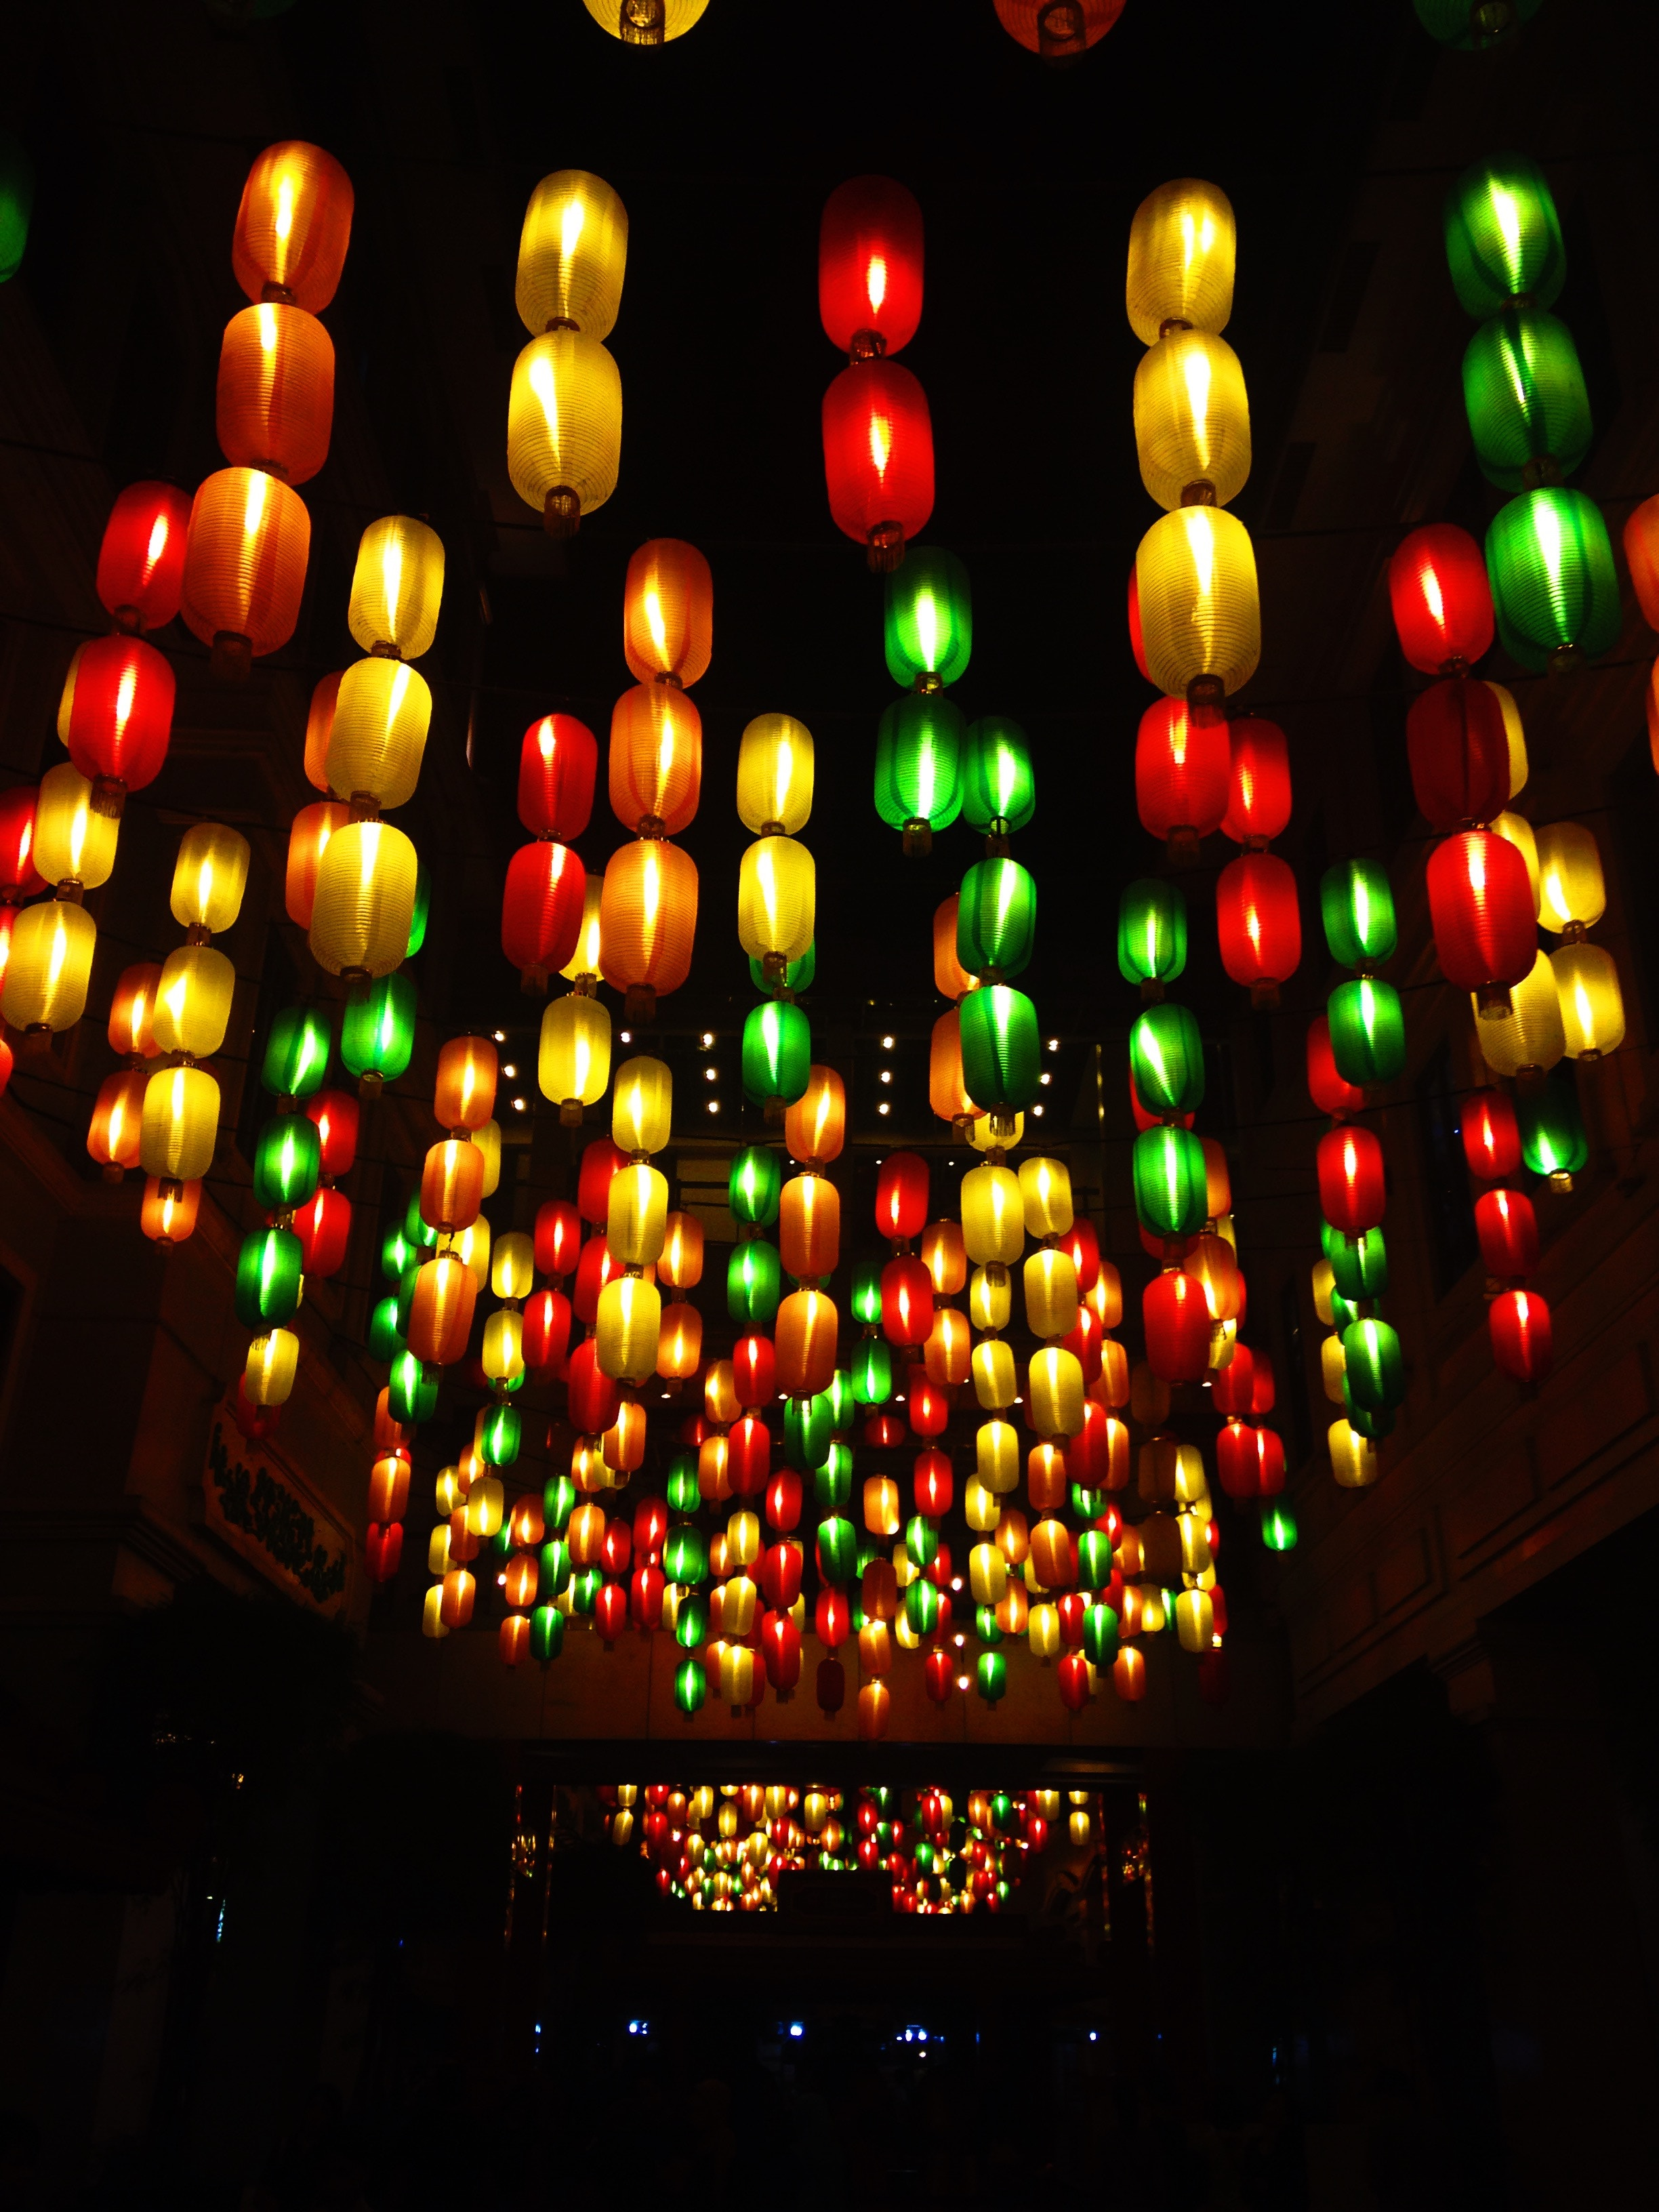 153647 download wallpaper Dark, Lamps, Lamp, Chandeliers, Multicolored, Motley, Lighting, Illumination, Ceiling screensavers and pictures for free